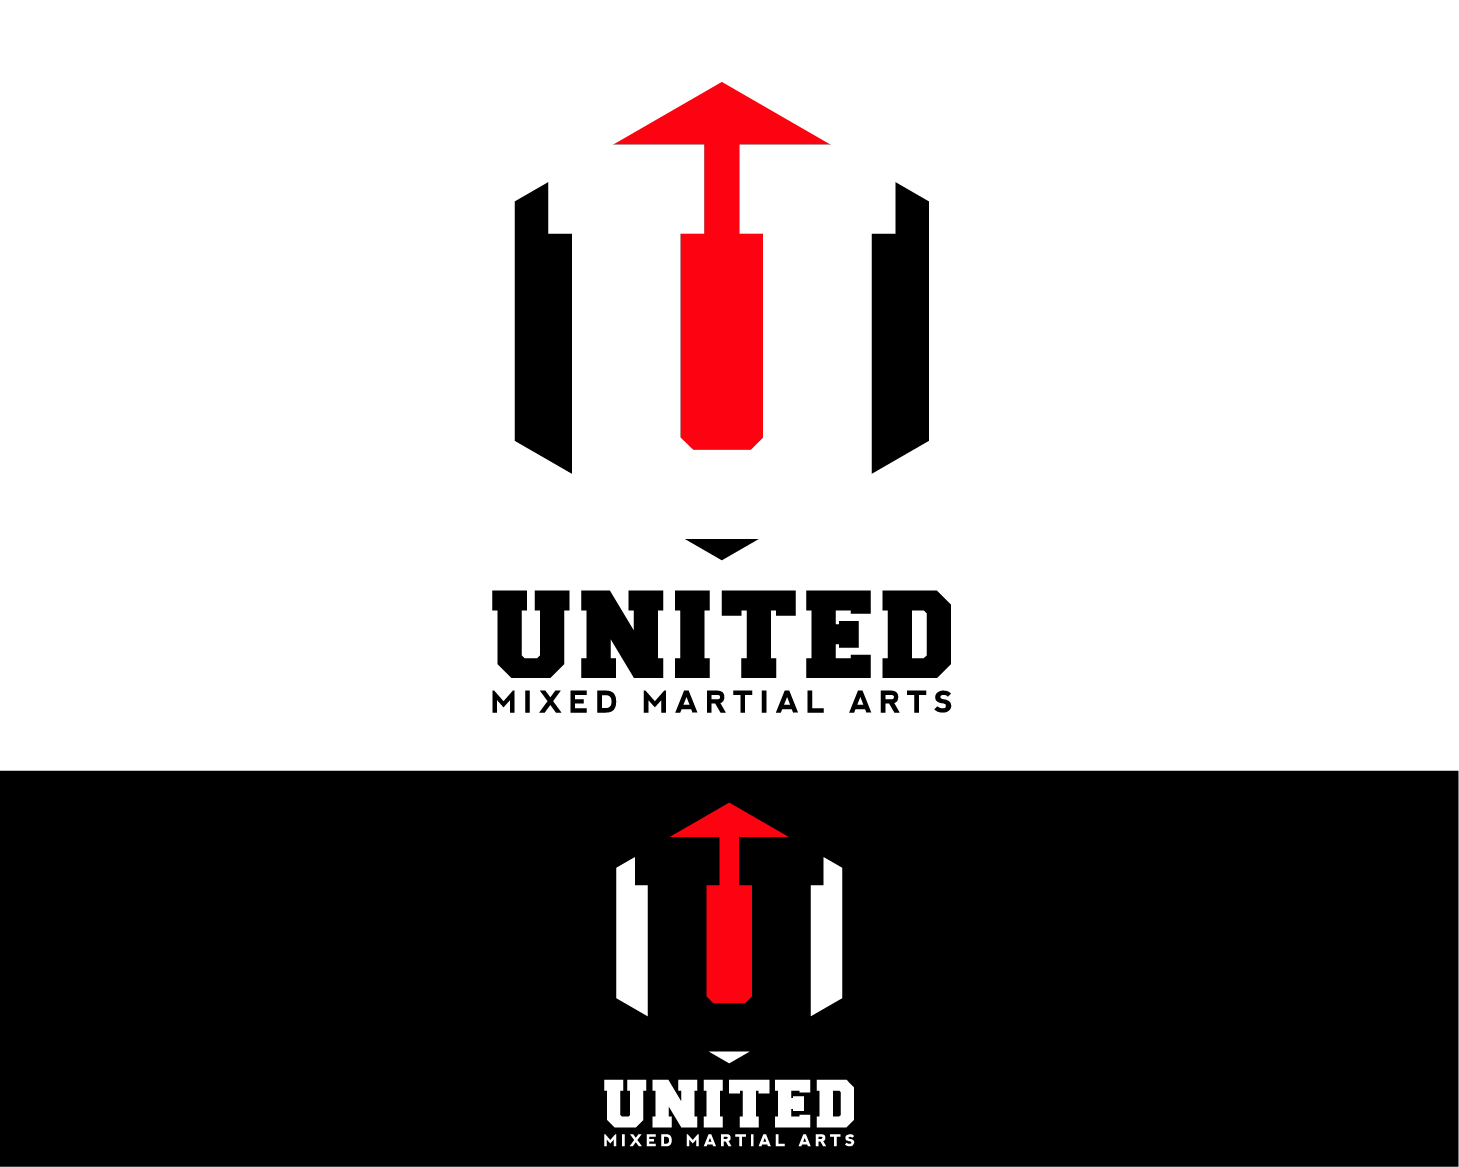 Logo Design by chAnDOS - Entry No. 114 in the Logo Design Contest Artistic Logo Design for United Mixed Martial Arts Ltd..